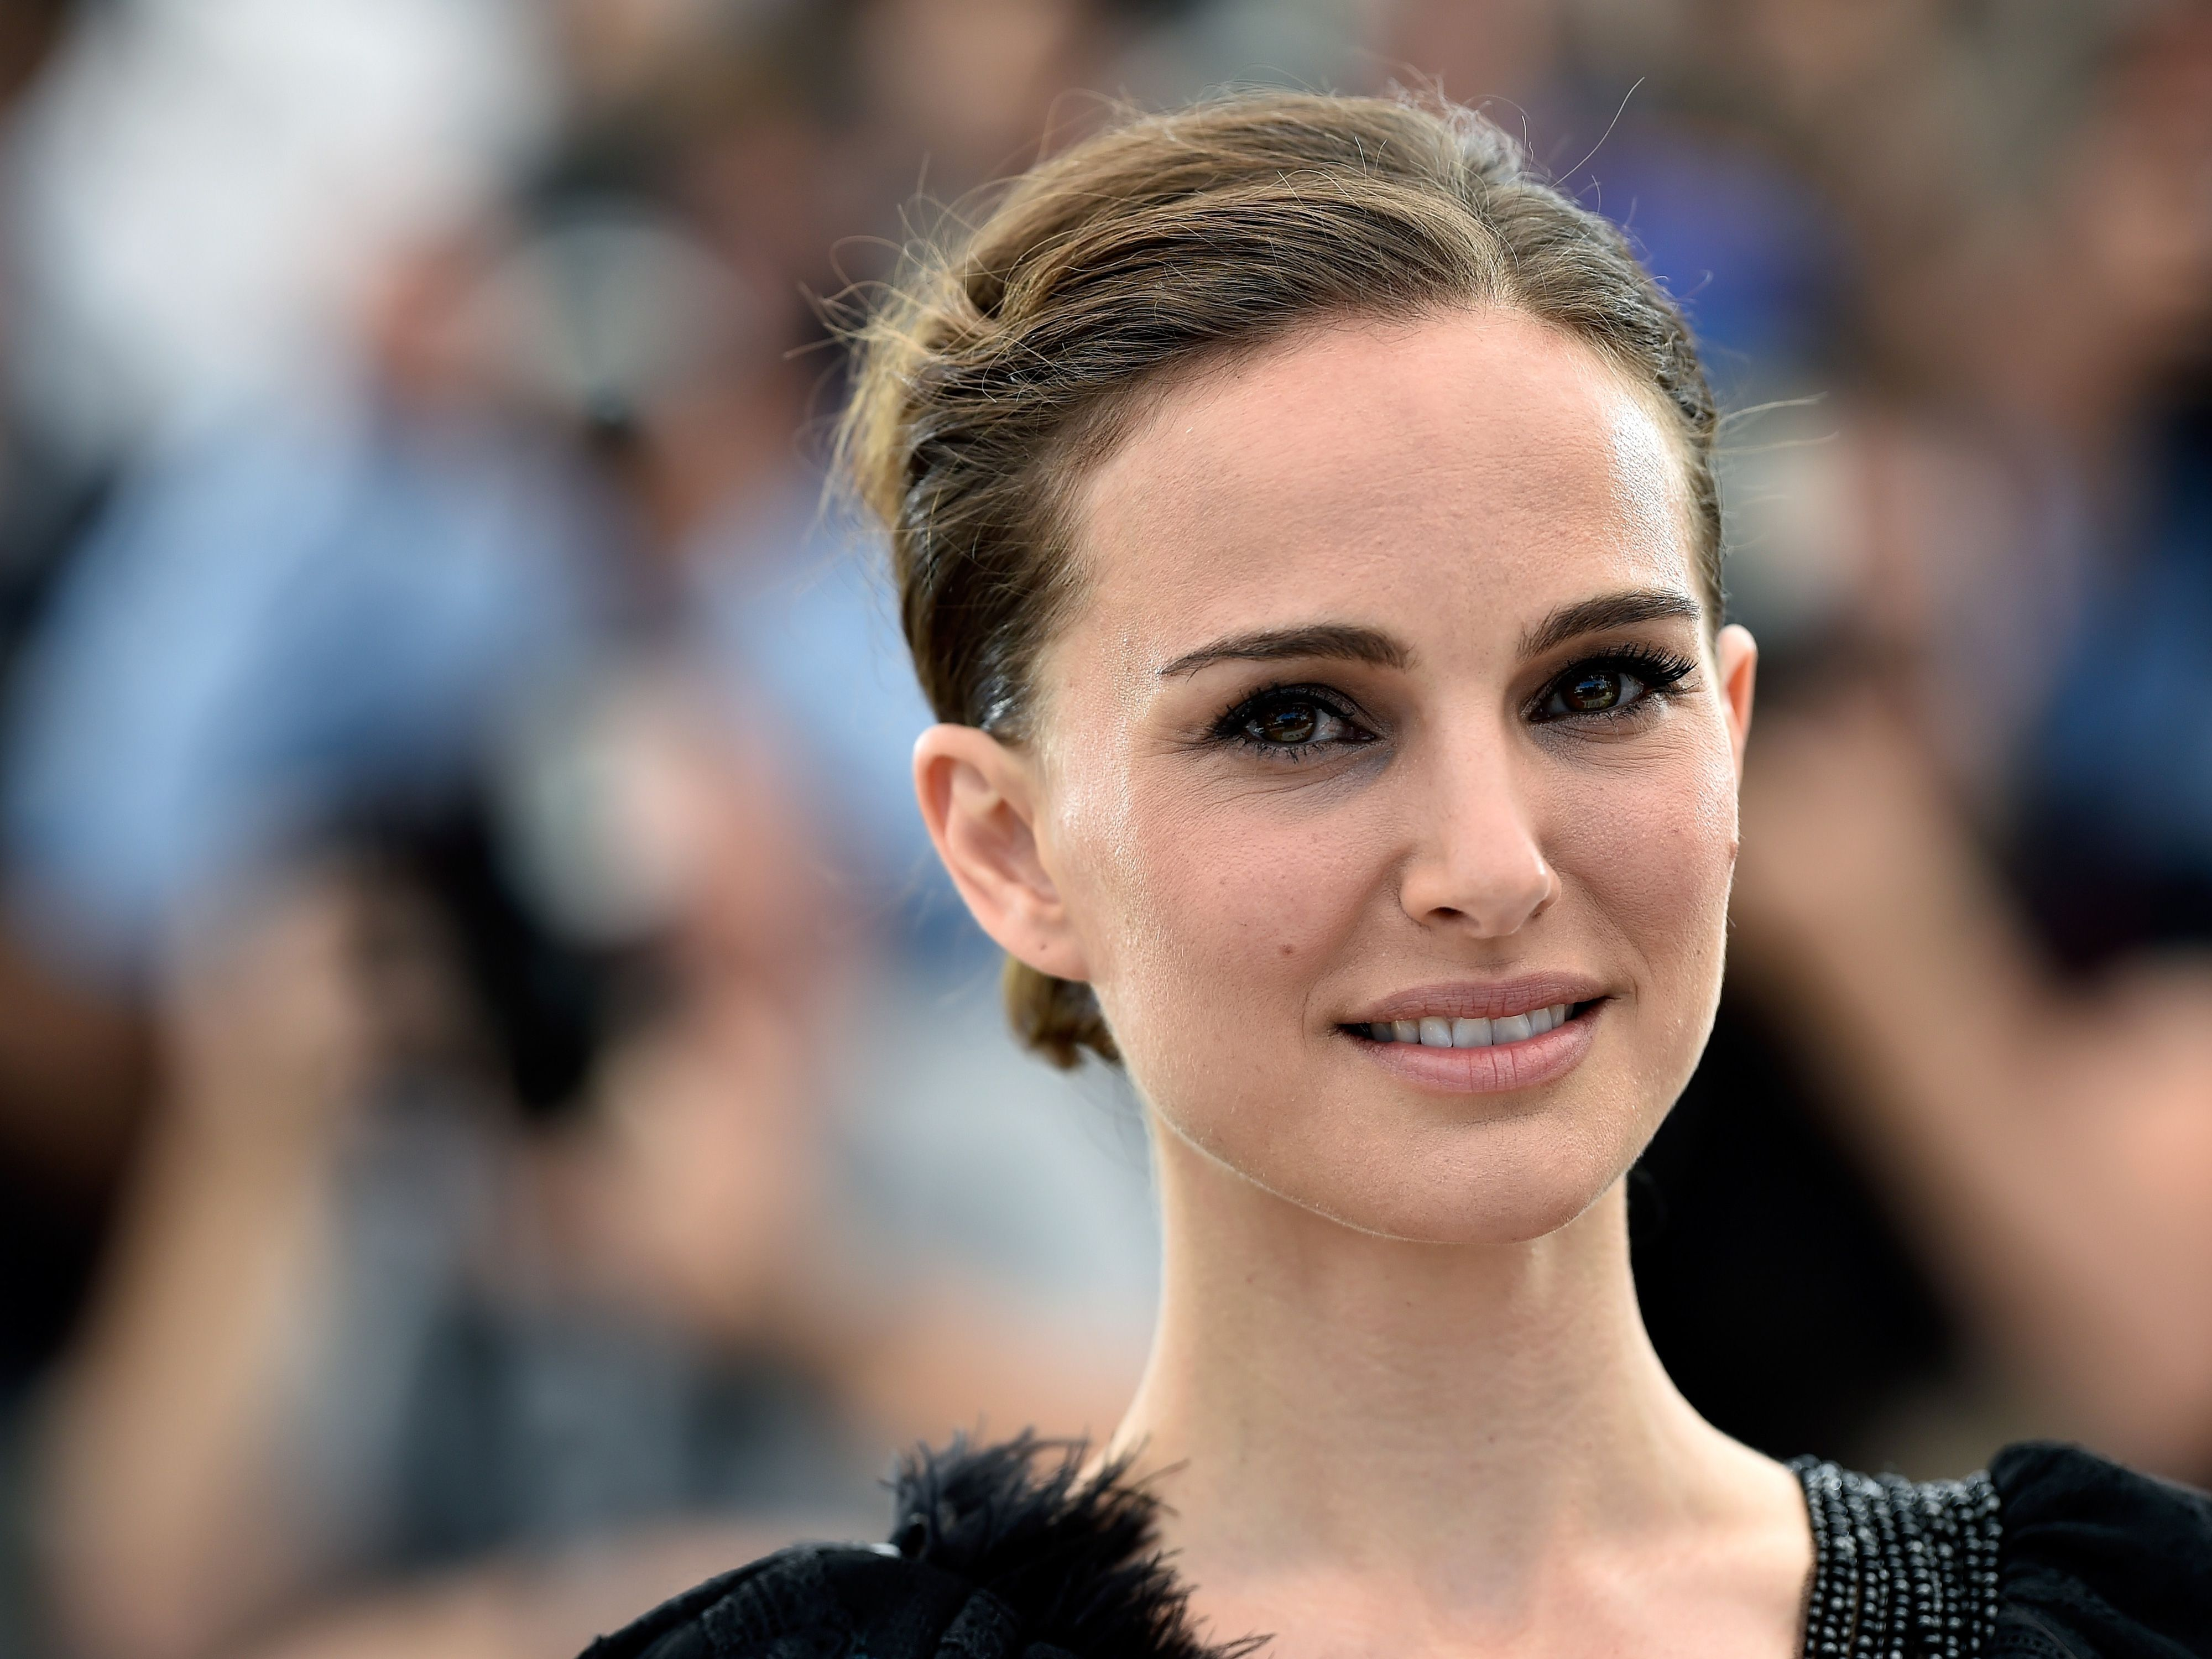 Exactly what Natalie Portman credits her strong body to